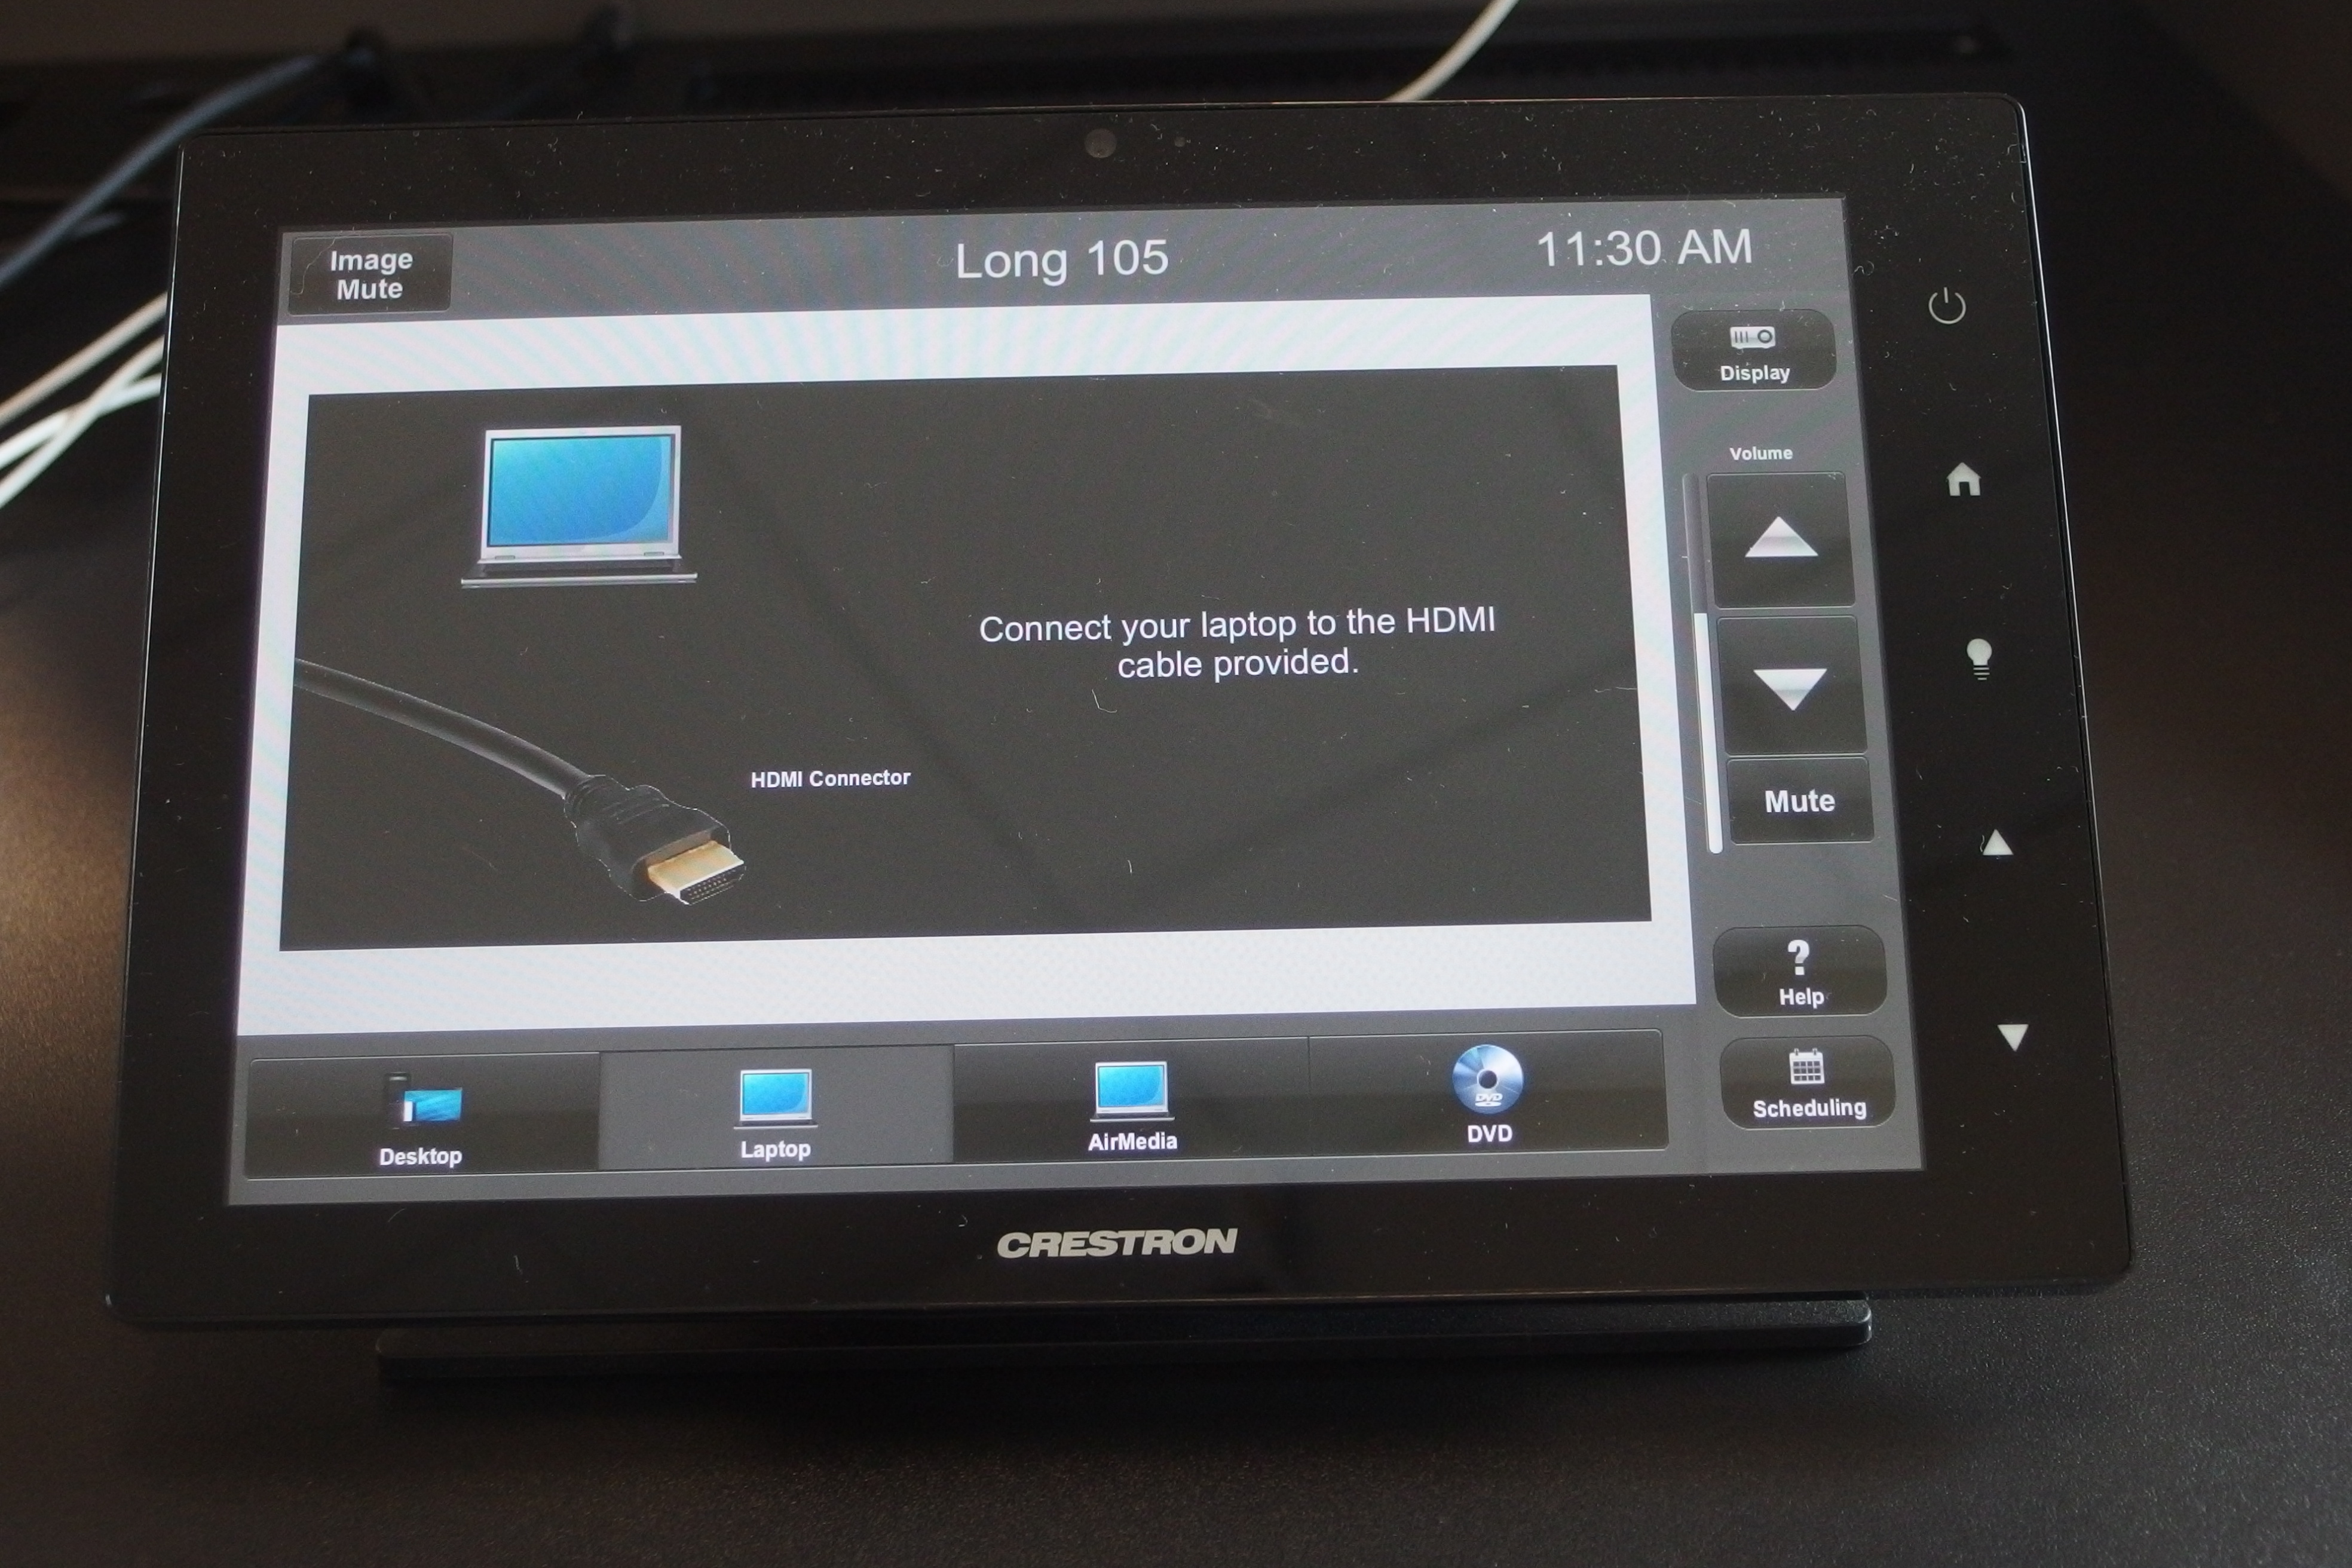 Photo of crestron control touch panel with the laptop tab active